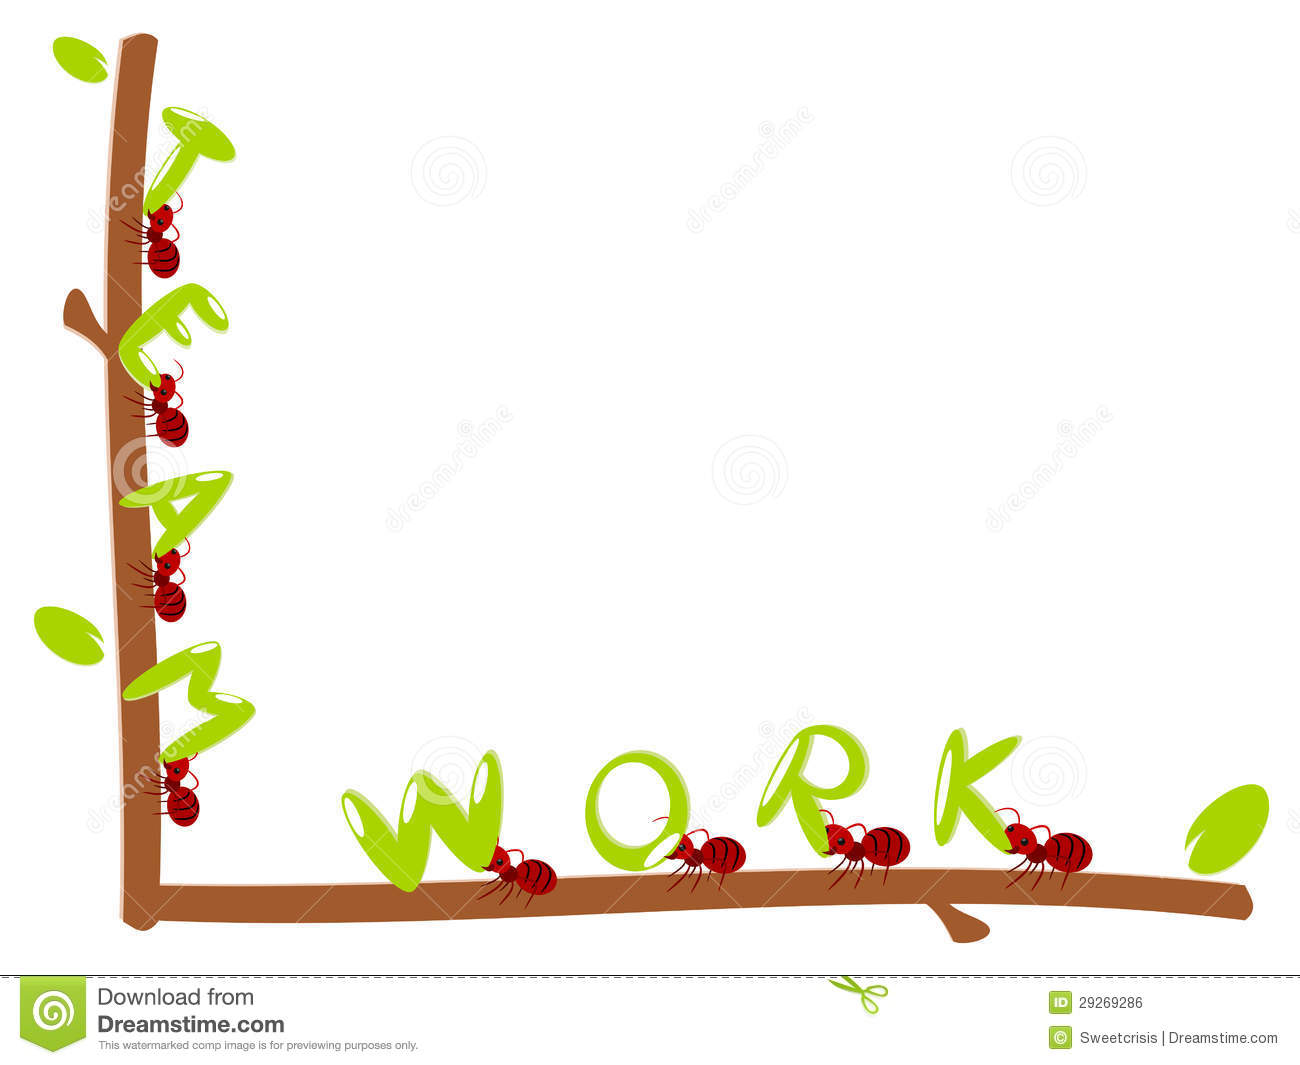 ant teamwork clipart 20 free Cliparts | Download images on ... - photo#20